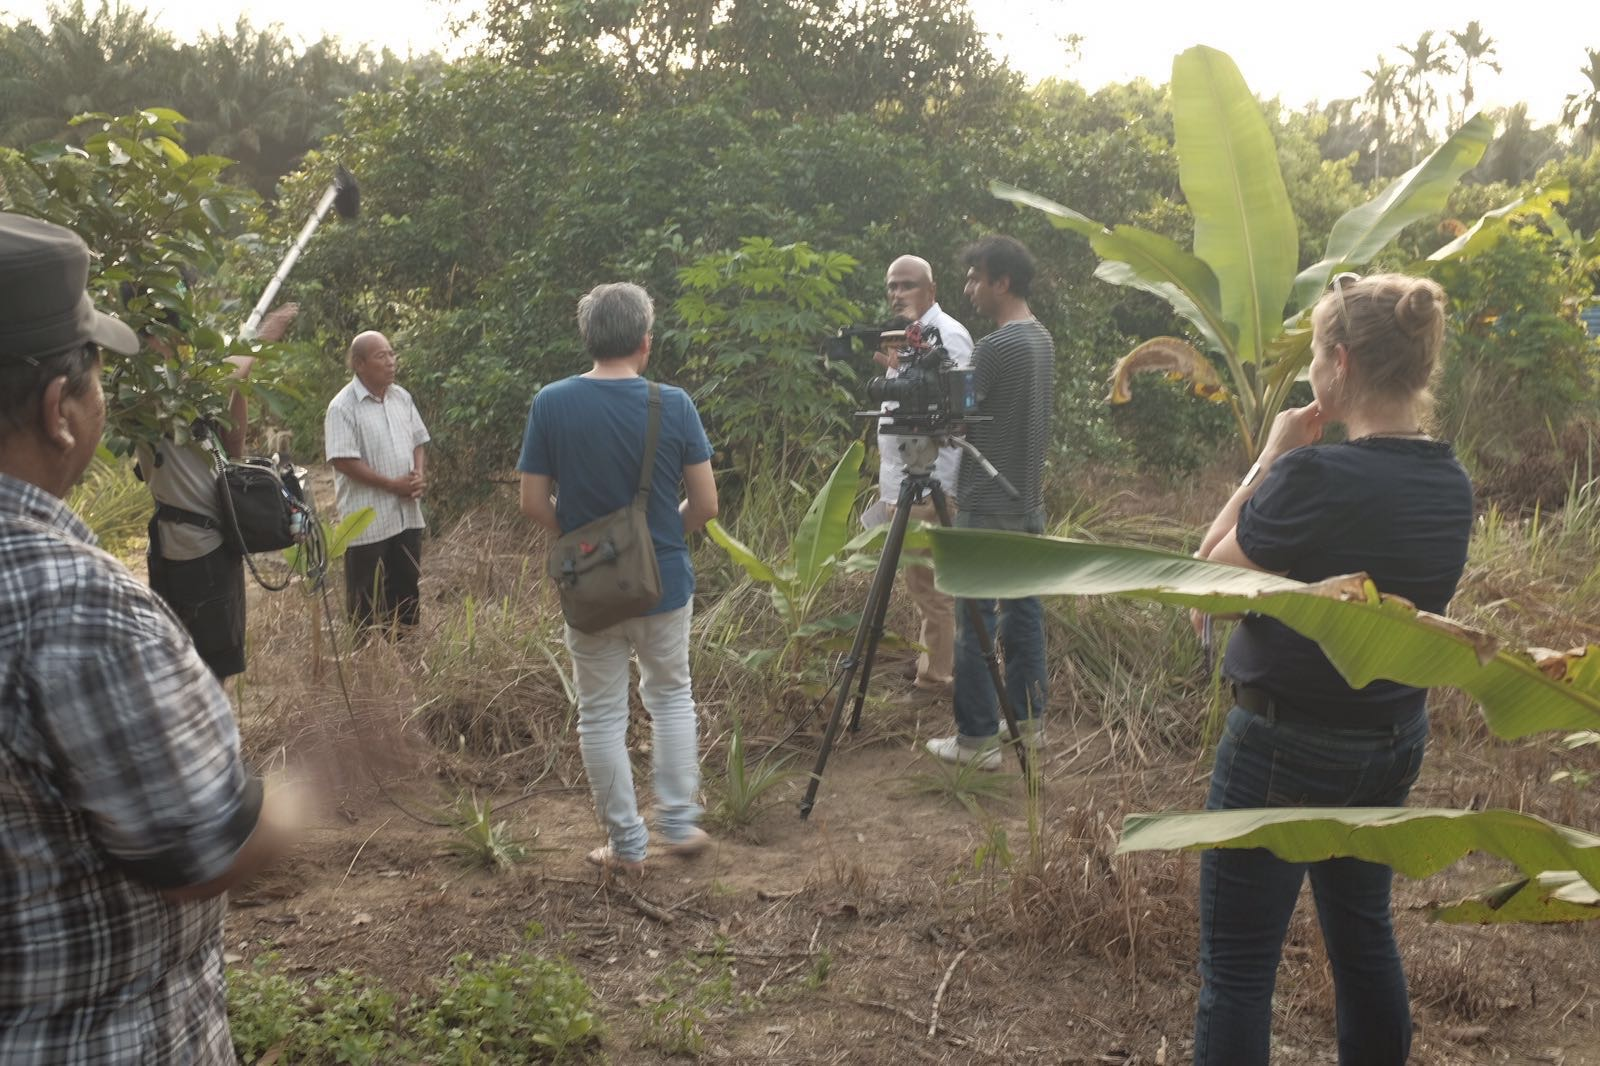 Filming in August 2016 in Malaysia for series of short films in collaboration with  CADPA (Coalition for the Abolition of Death Penalty in ASEAN) . #EndCrimeNotLife. Photo Credit: Adrian Danciu